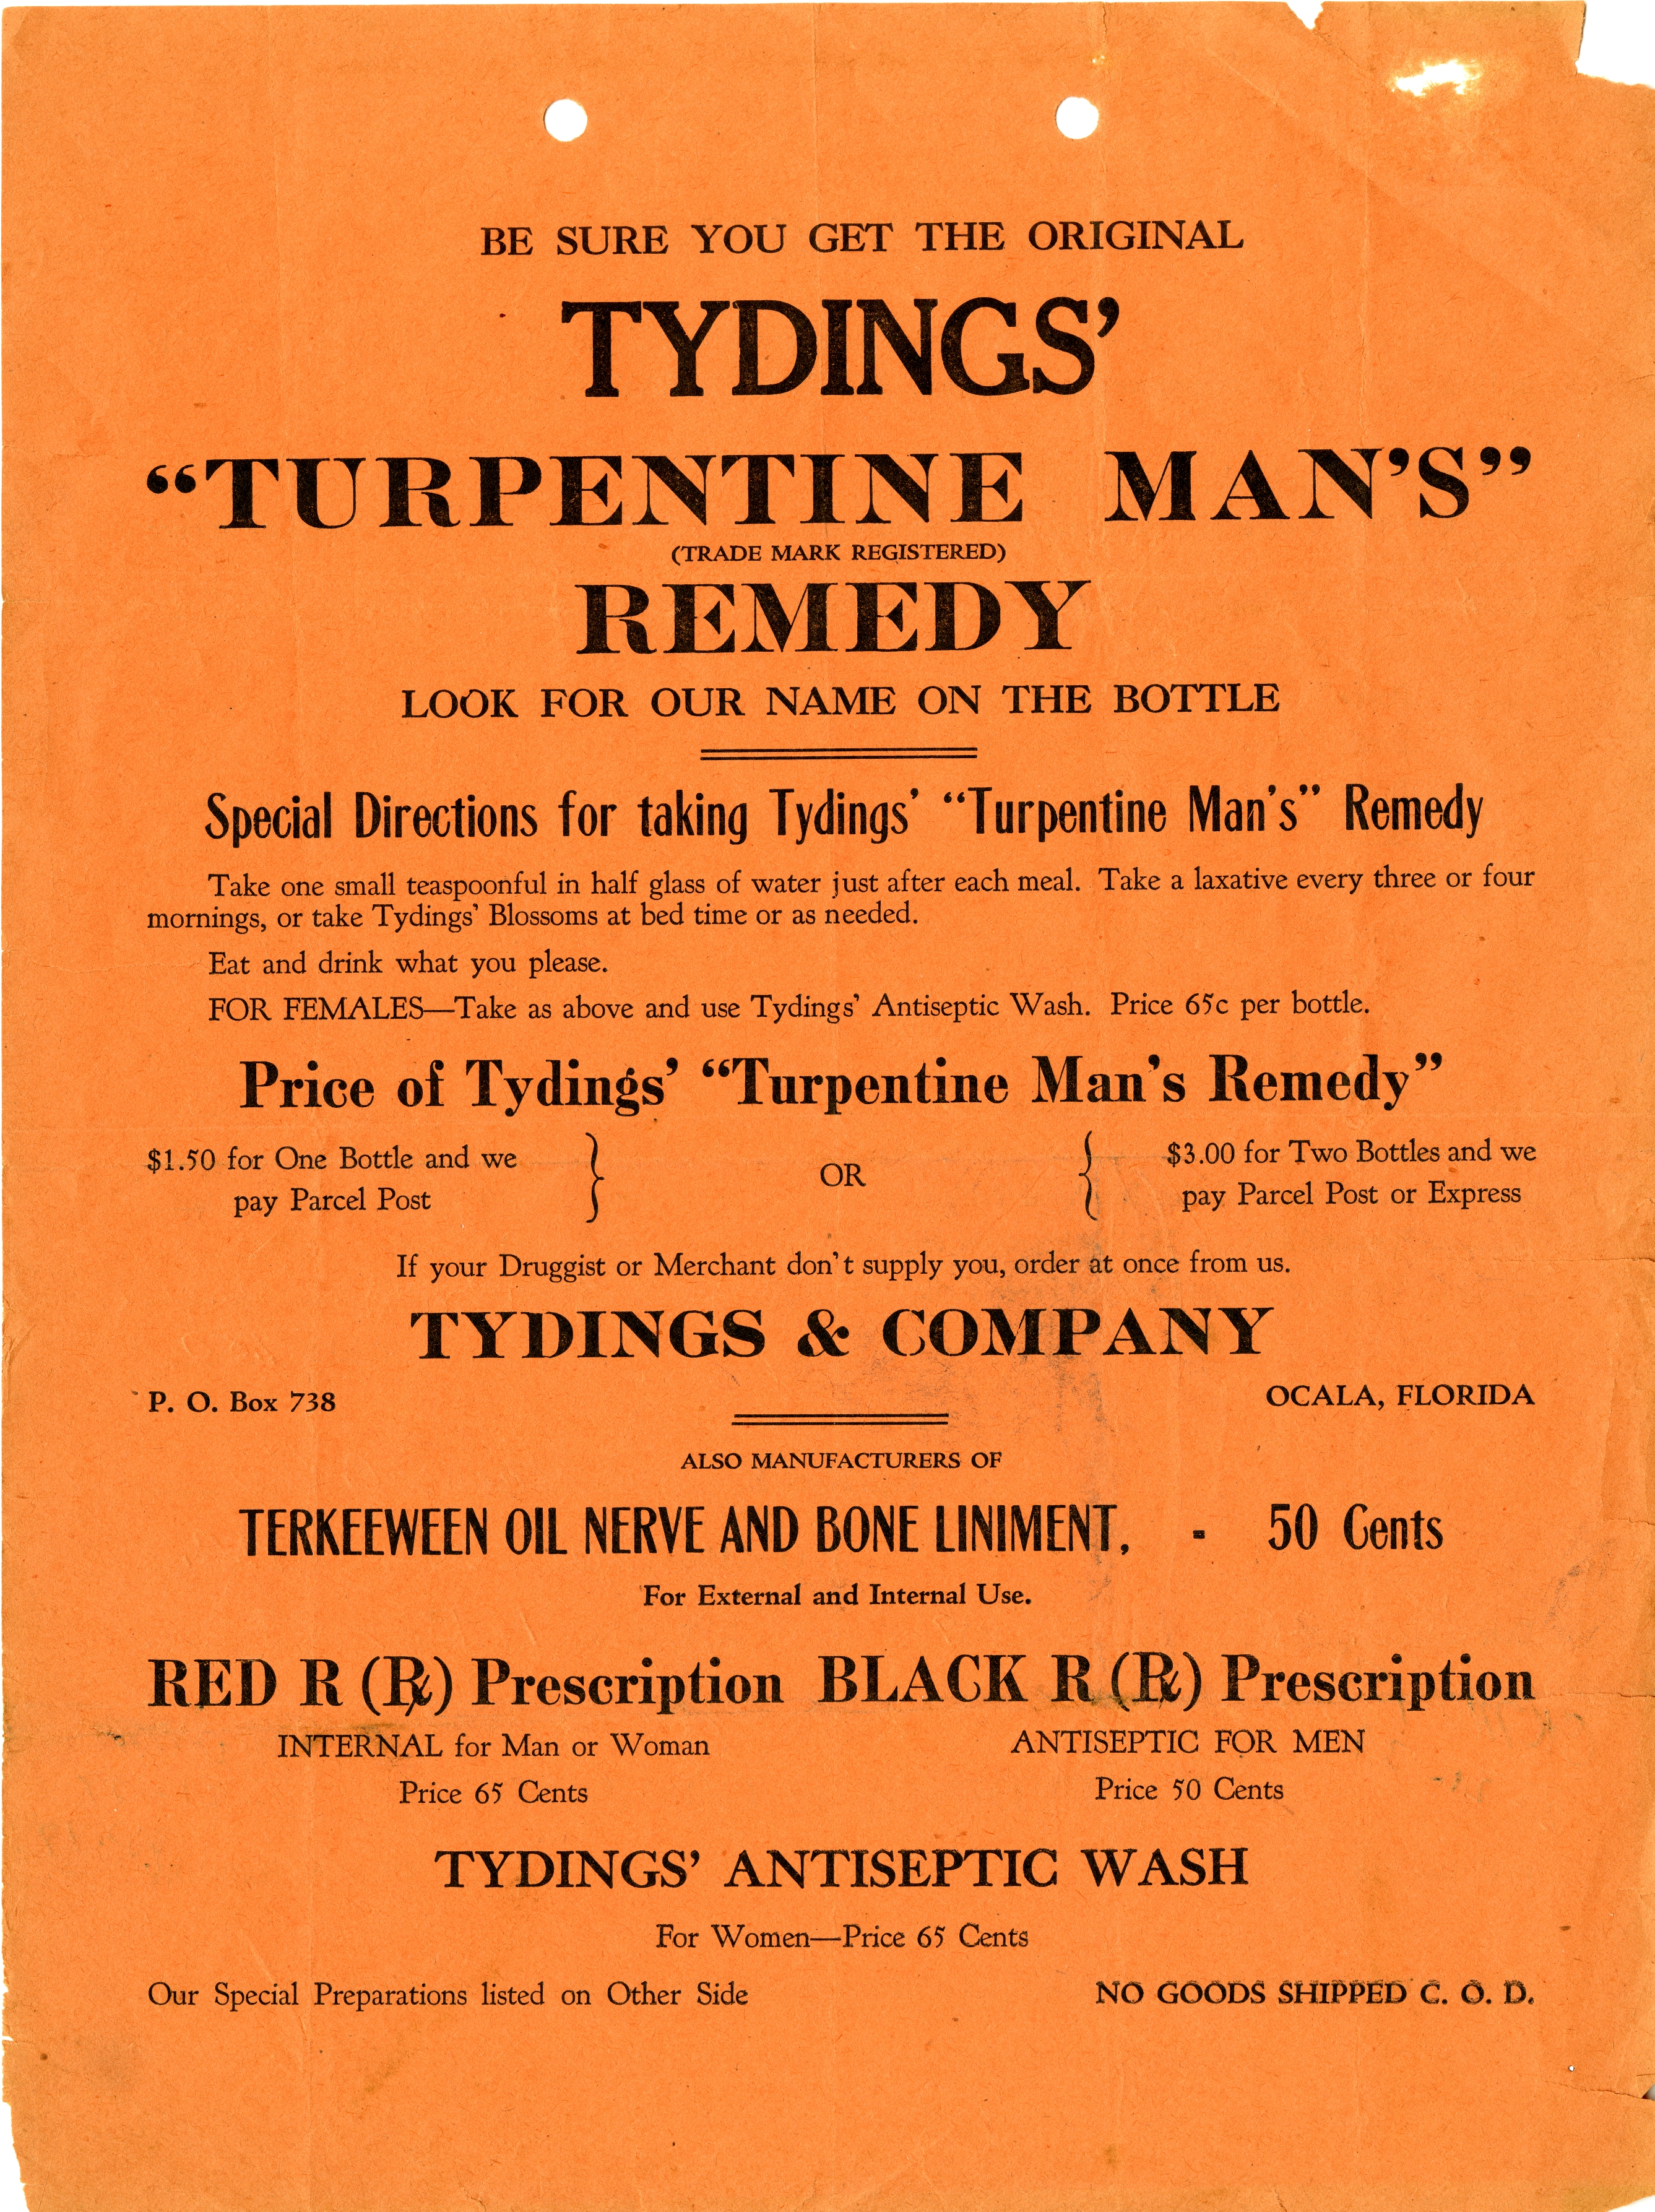 Broadside for Tydings'